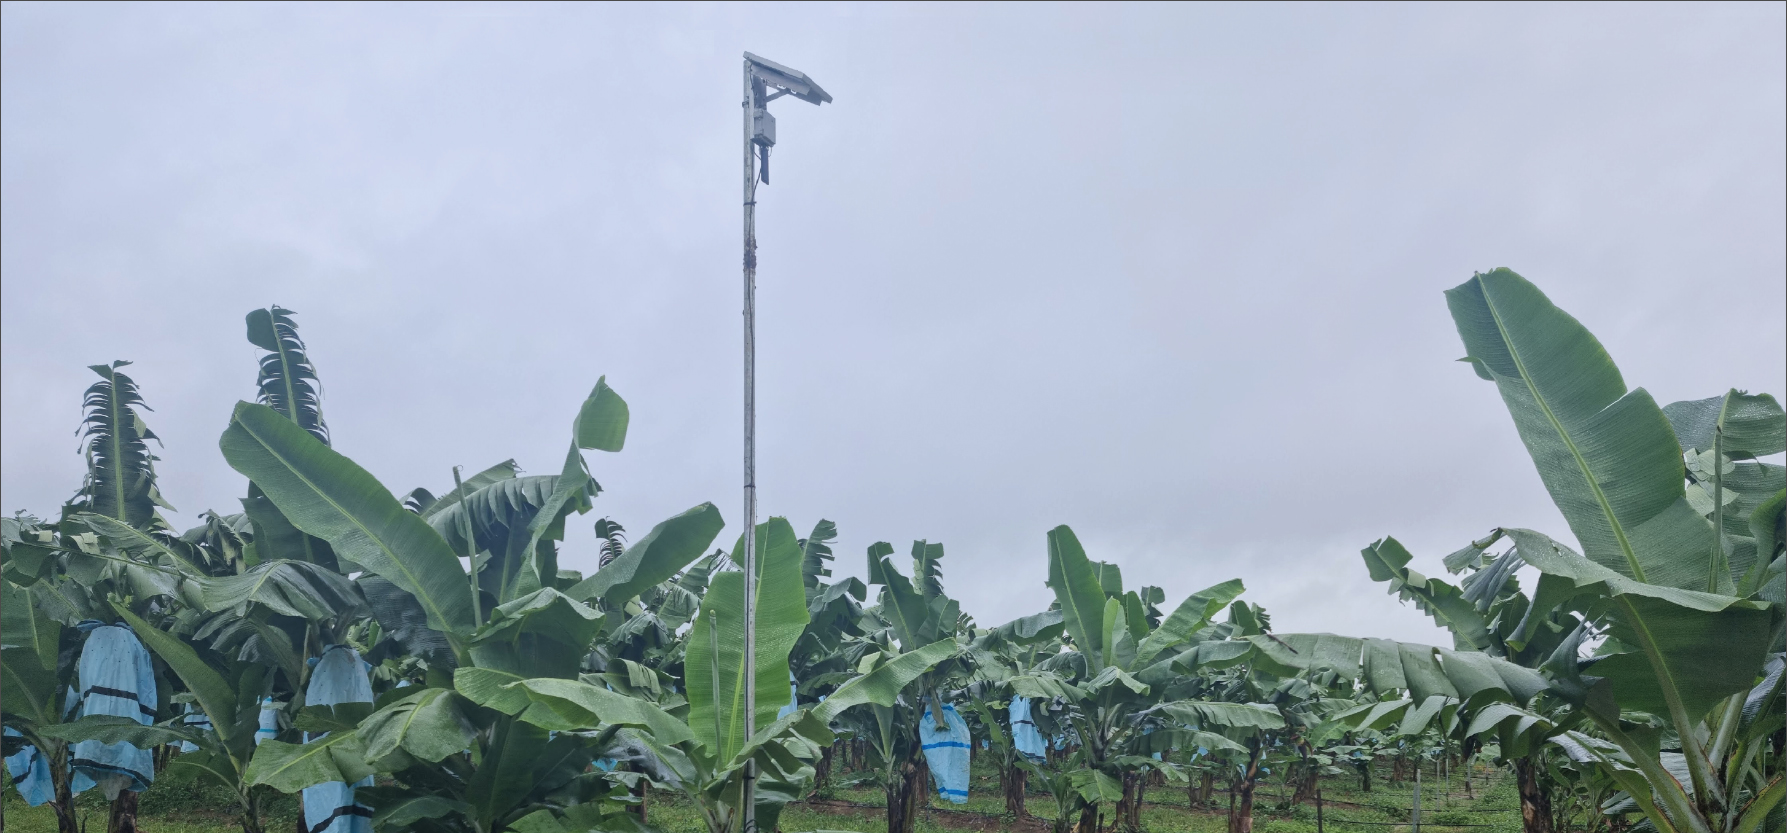 IoT System for Real Time Nitrate Runoff Monitoring